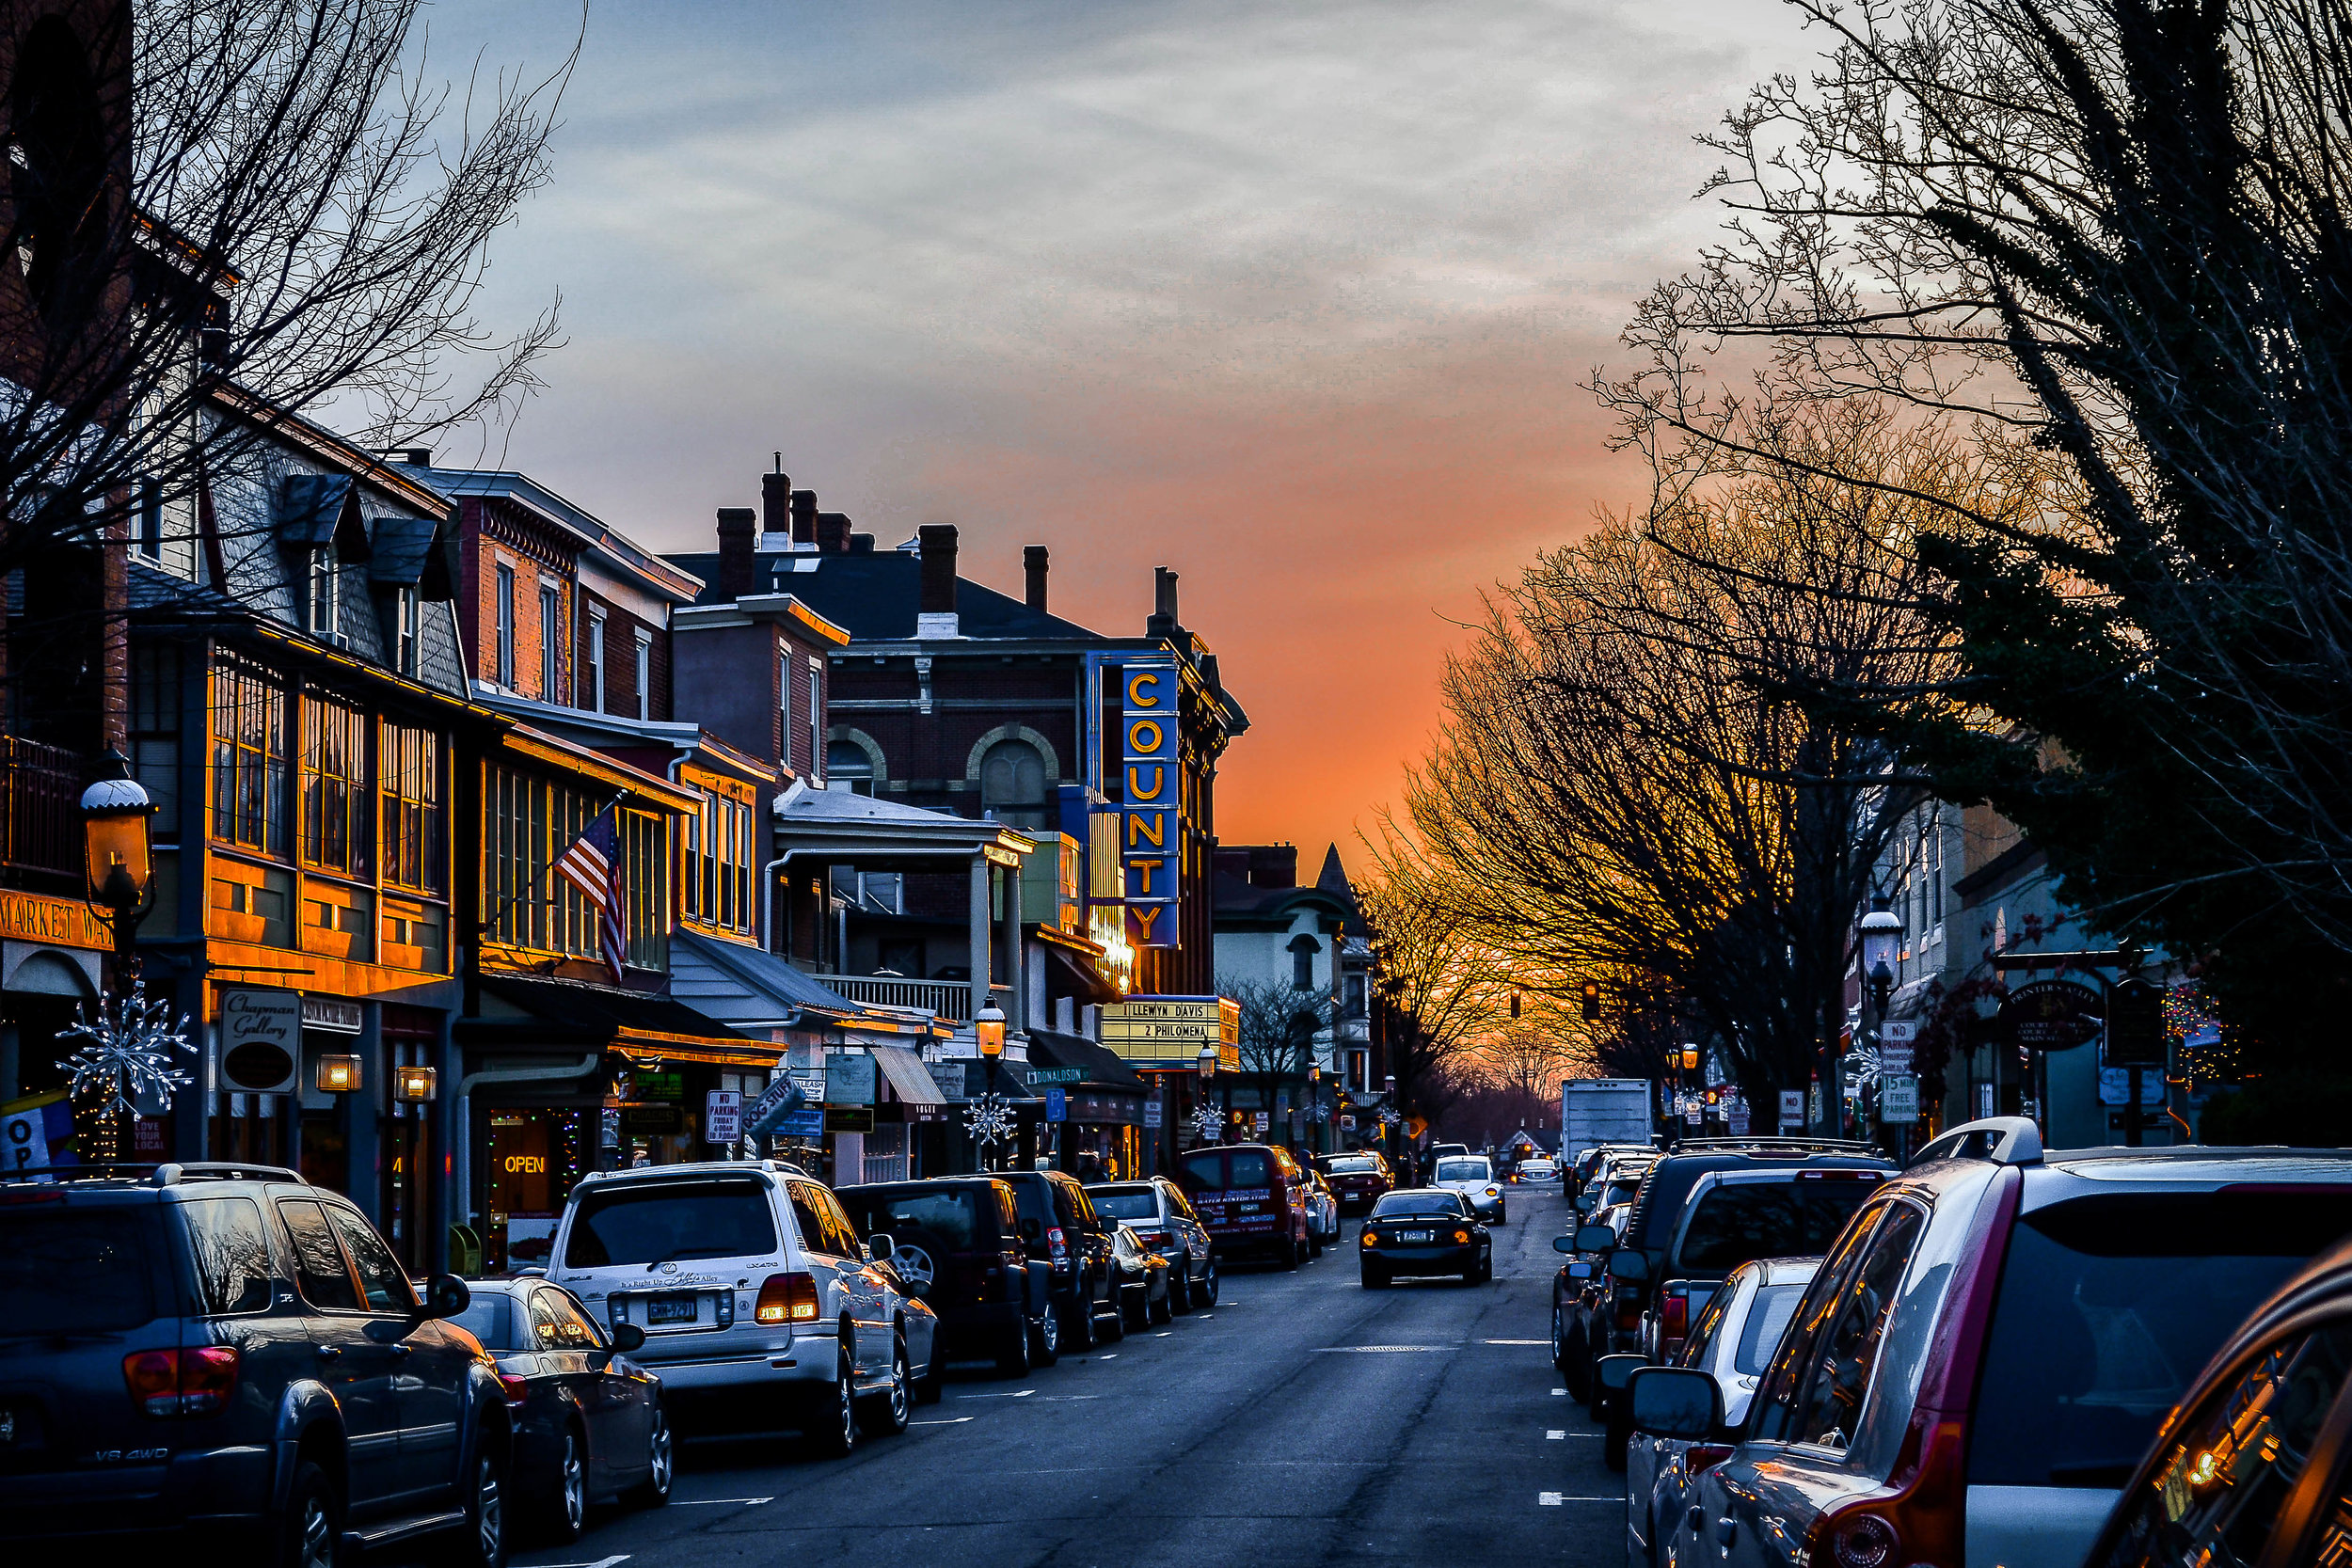 Downtown Doylestown at sunset looking down East State Street, captured by Michael Brooks